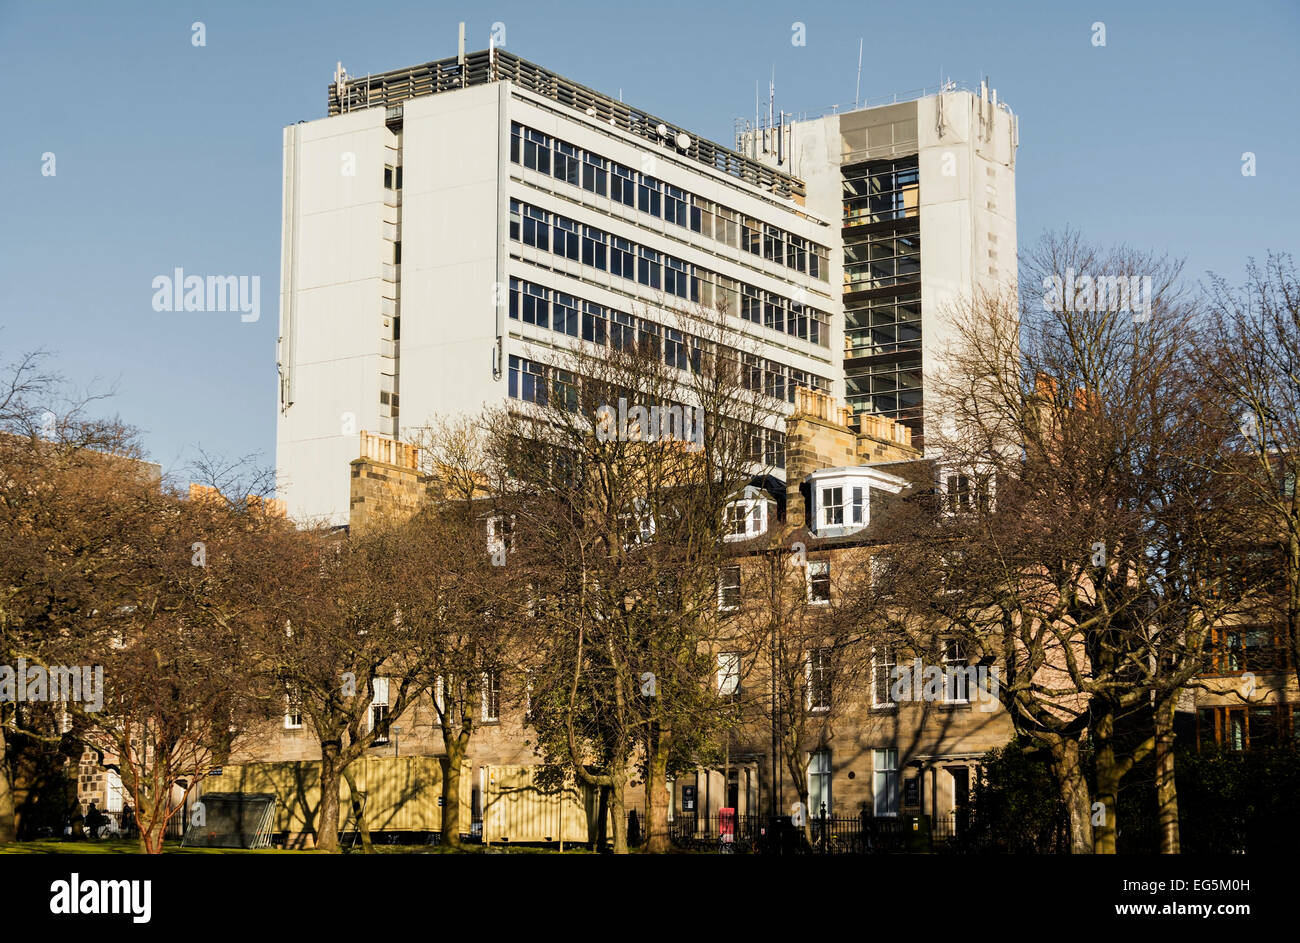 Appleton Tower, part of the University of Edinburgh, from George Square. - Stock Image